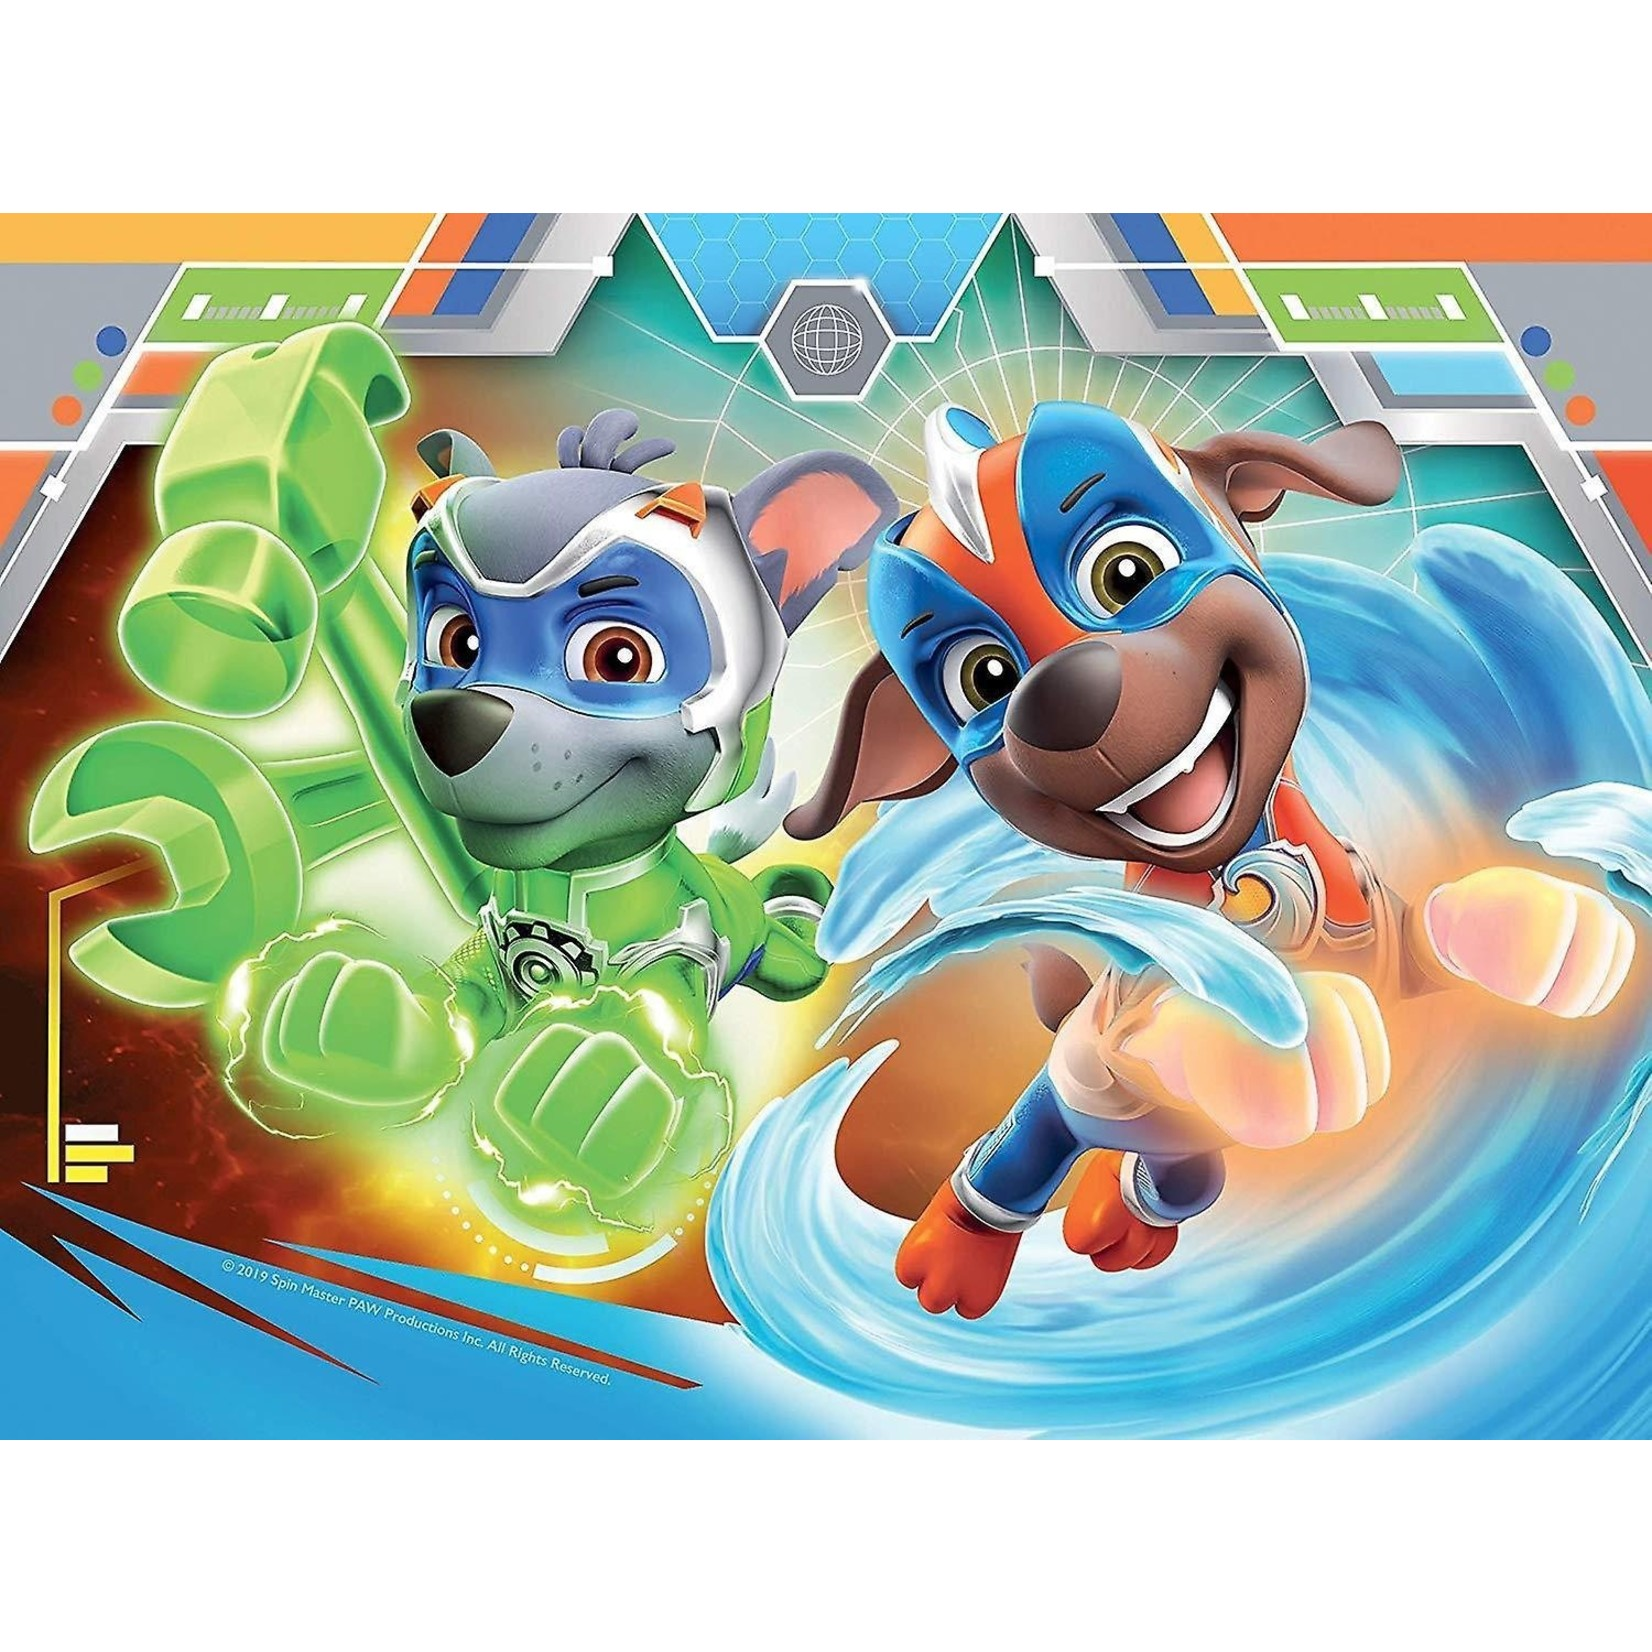 Ravensburger PAW Patrol 4 in 1 Mighty Pups Puzzle Ravensburger